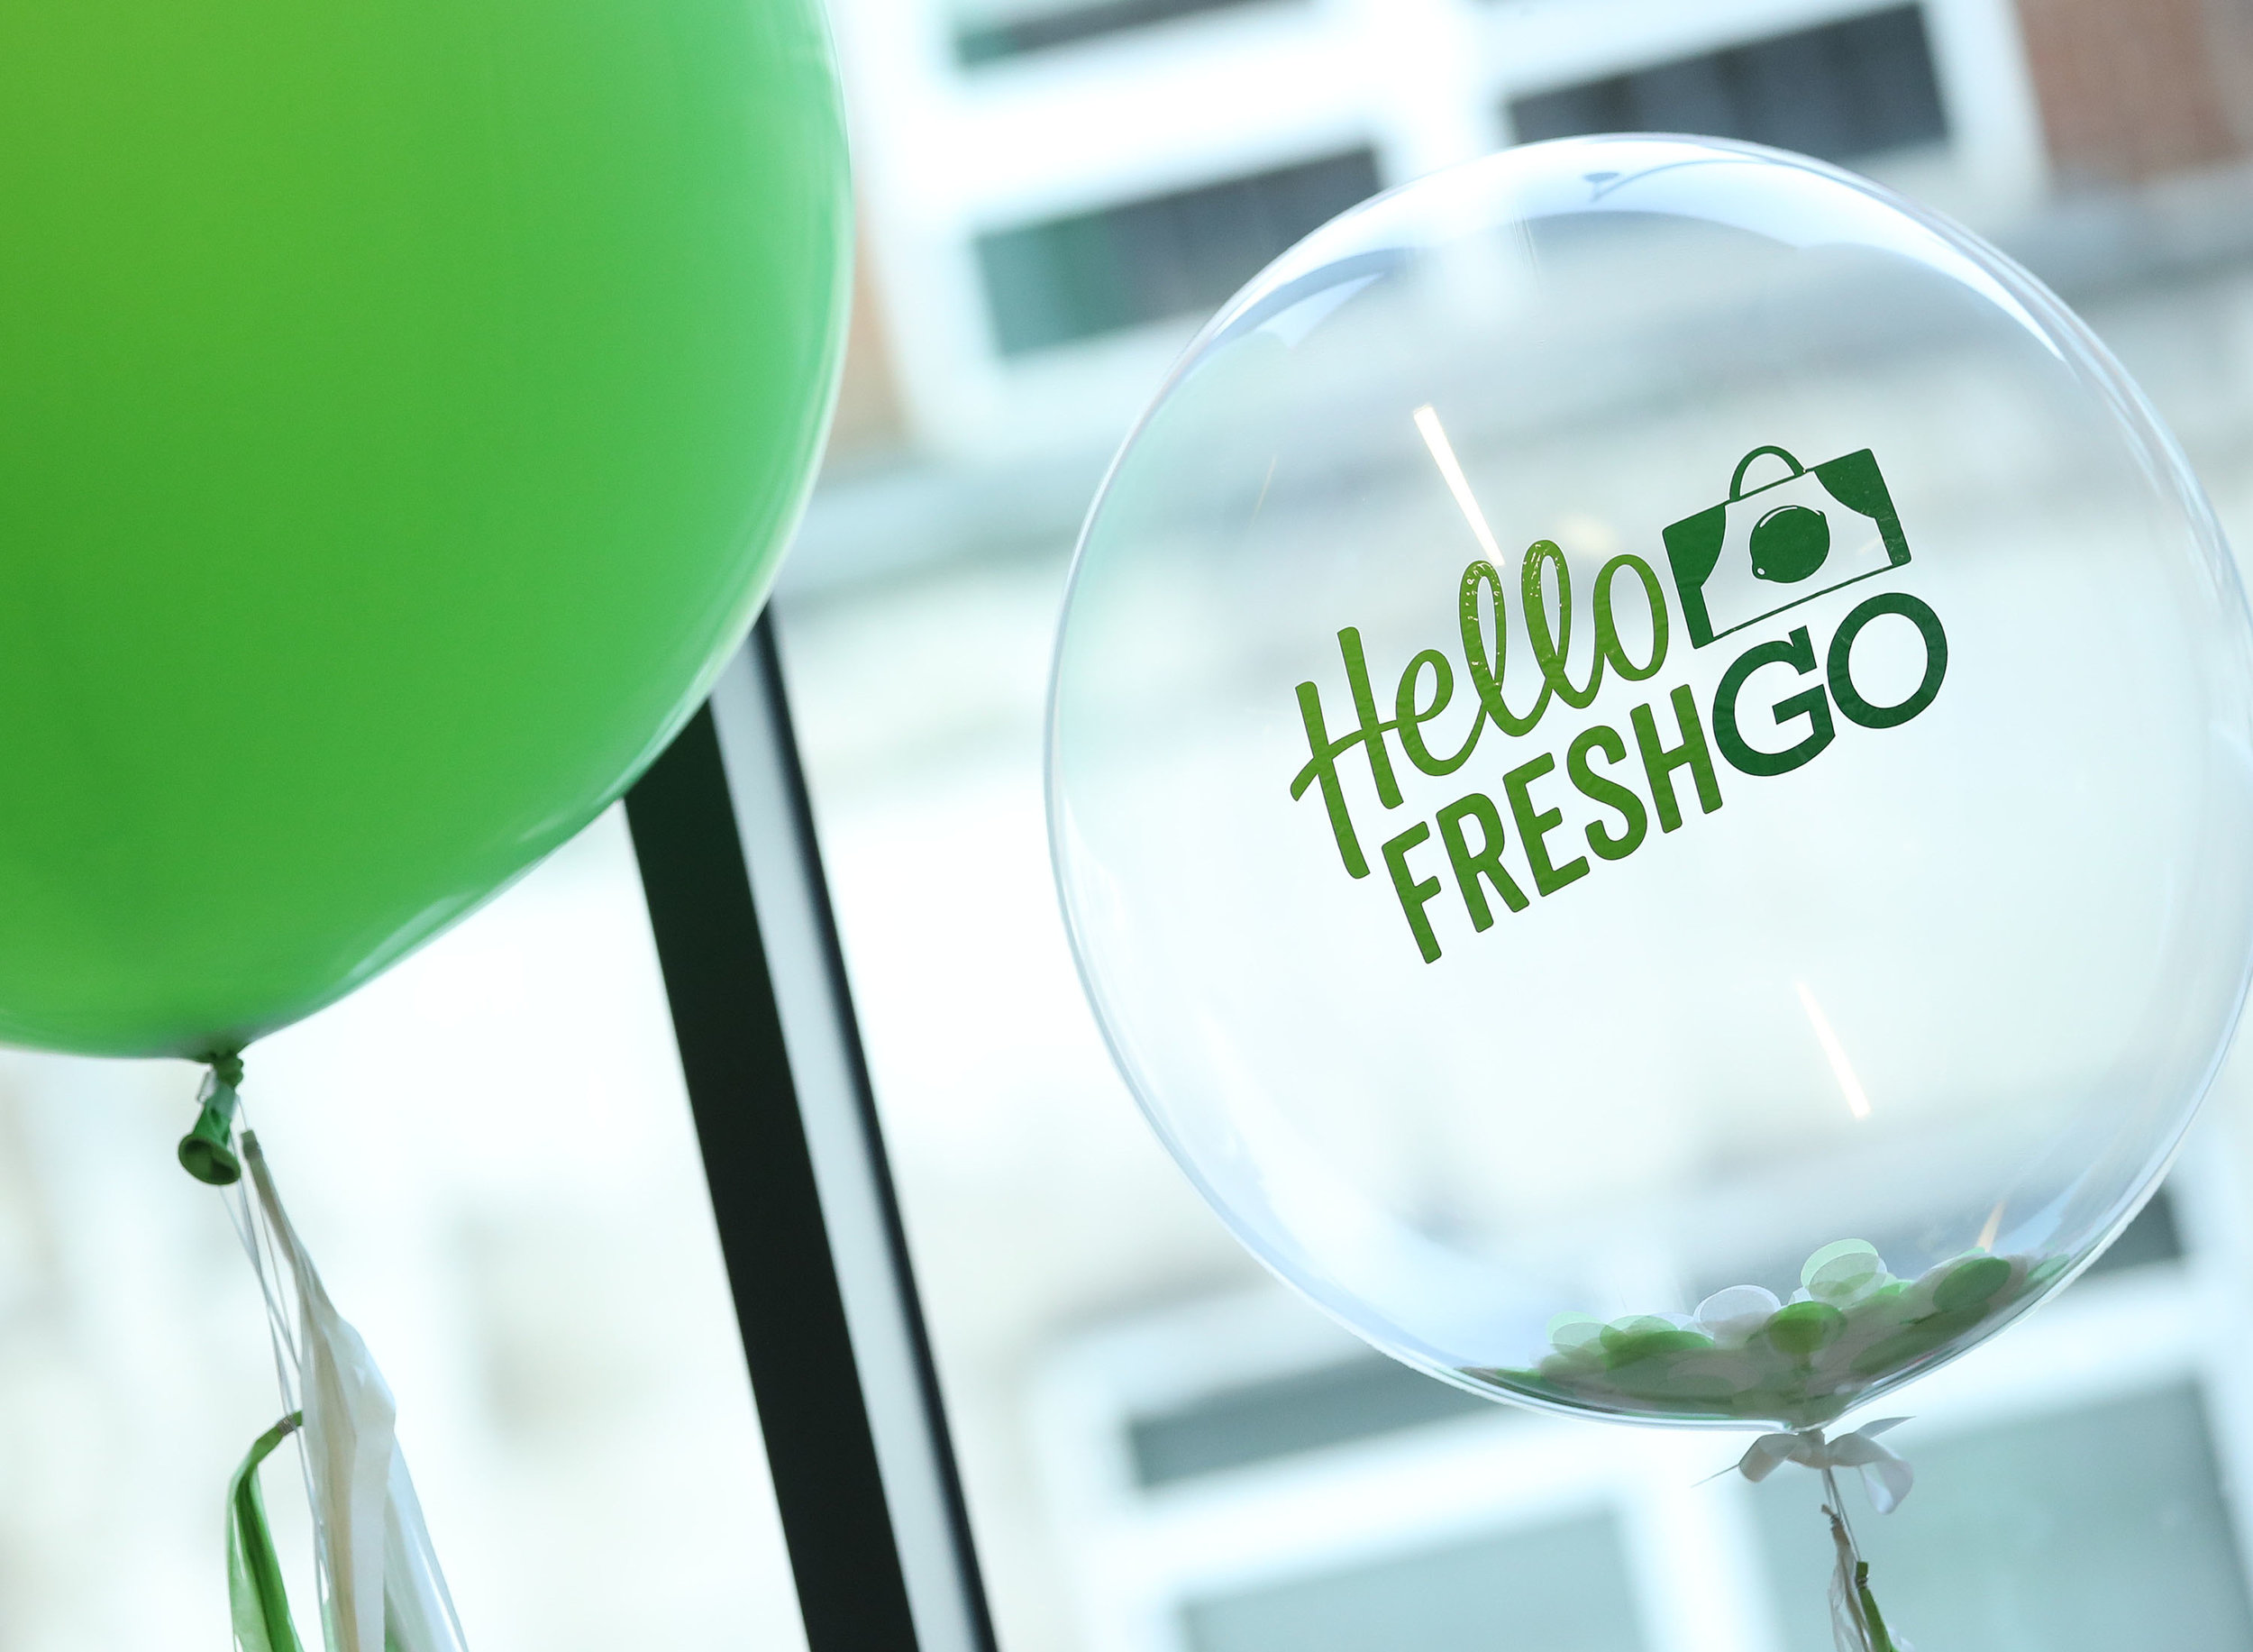 The closest I'll get to competing on MasterChef - the launch of HelloFreshGo